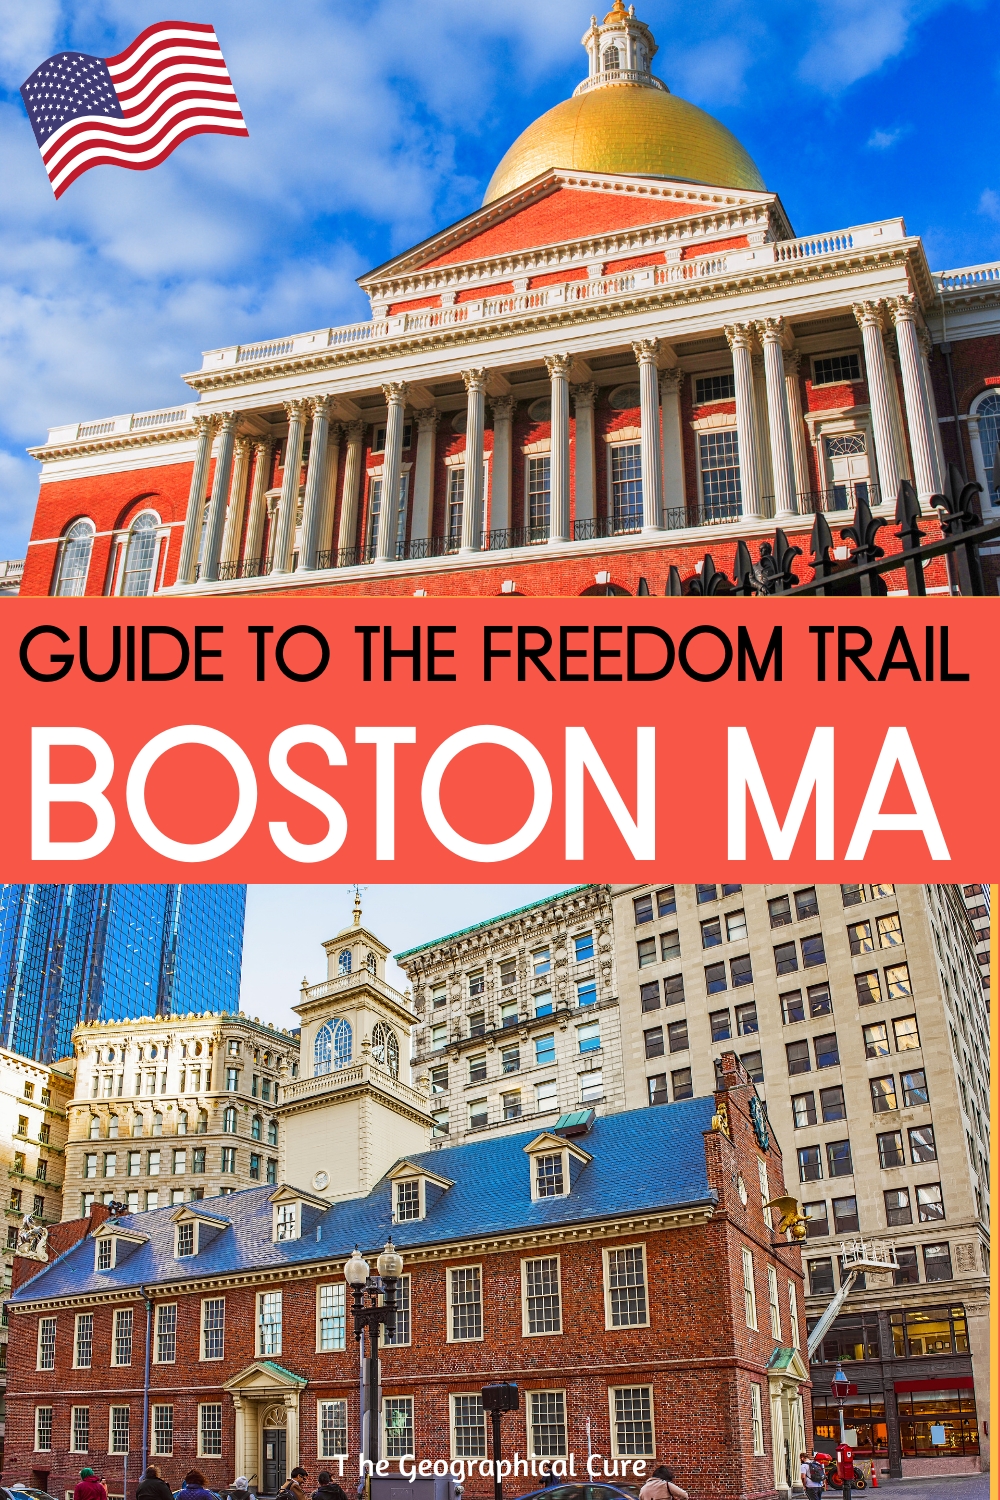 Guide to Walking the Freedom Trail in Boston